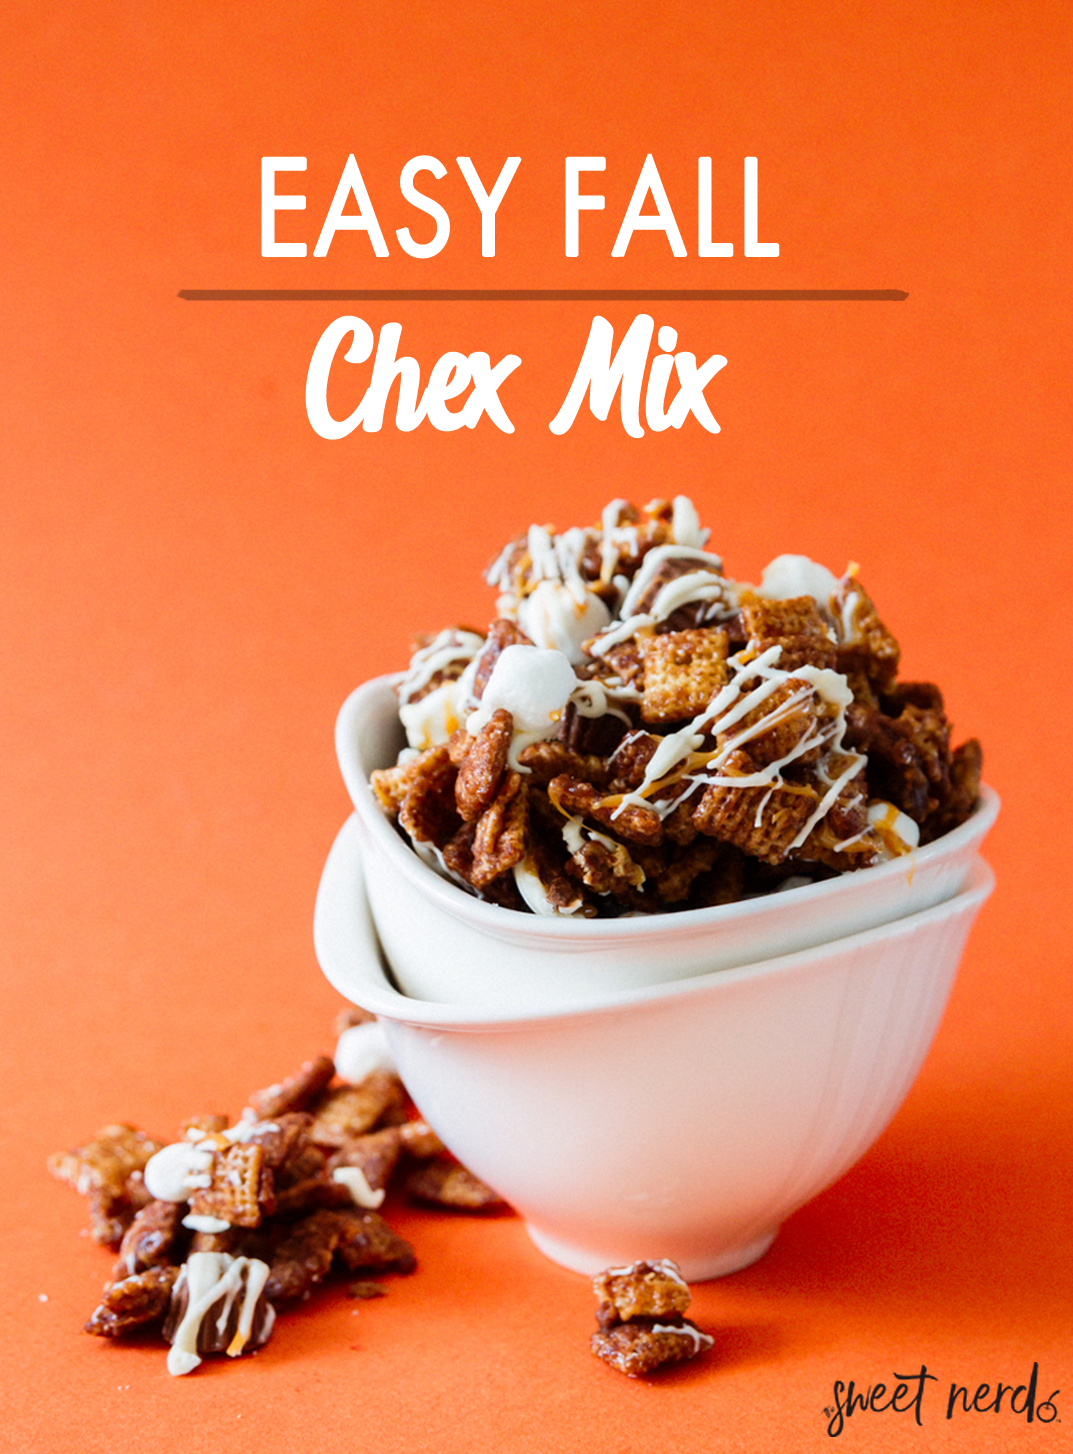 Easy Fall Chex Mix